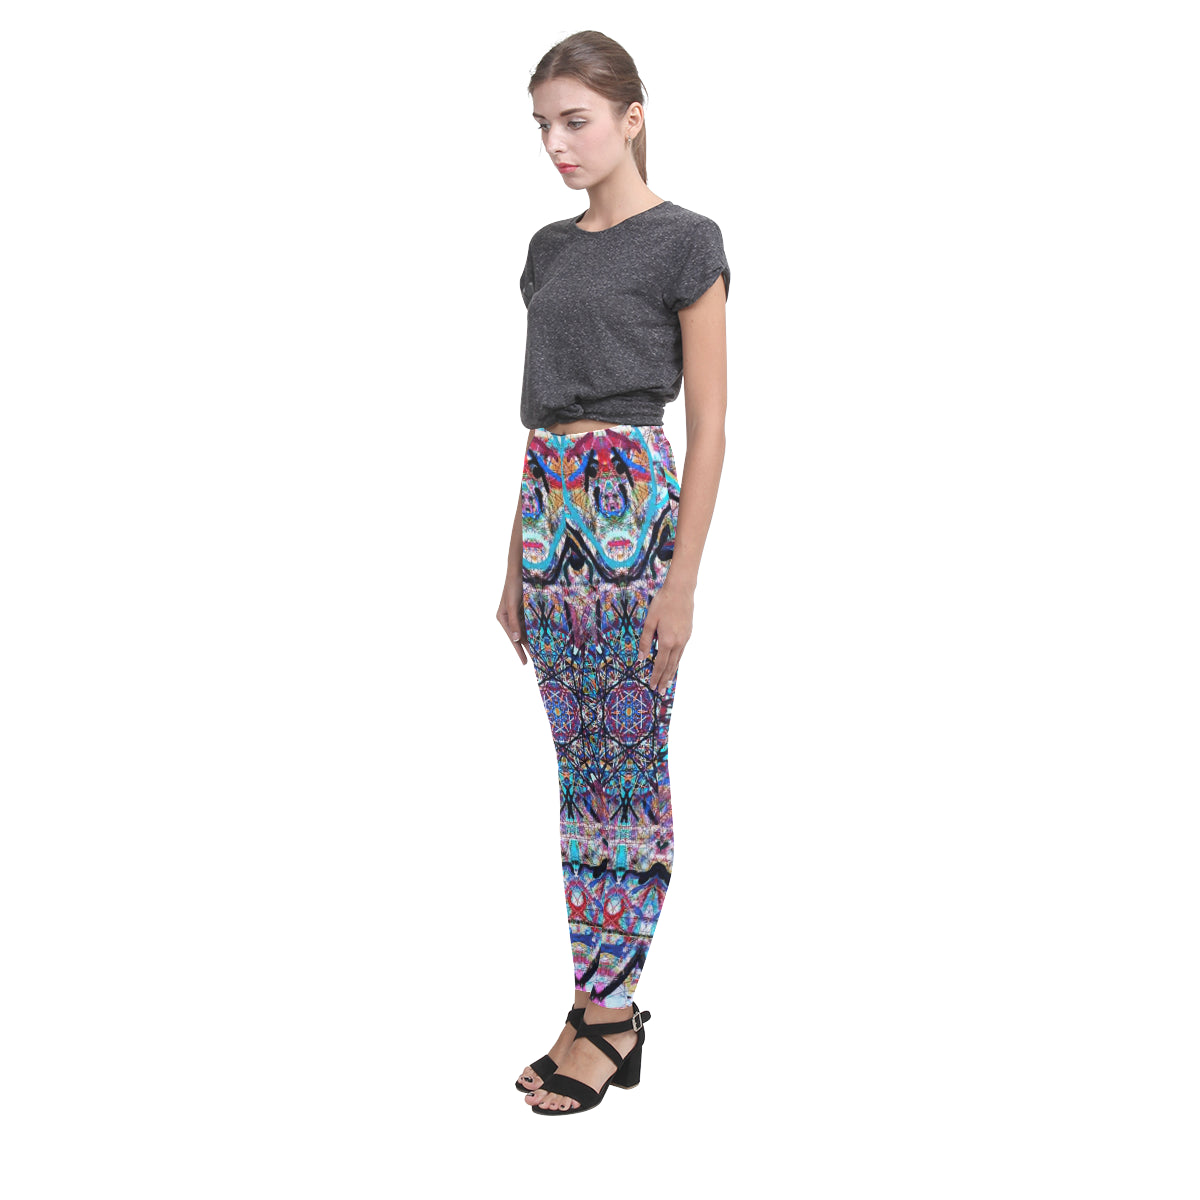 Thleudron Women's Dream Catcher Cassandra Women's Leggings (Model L01) - Thleudron